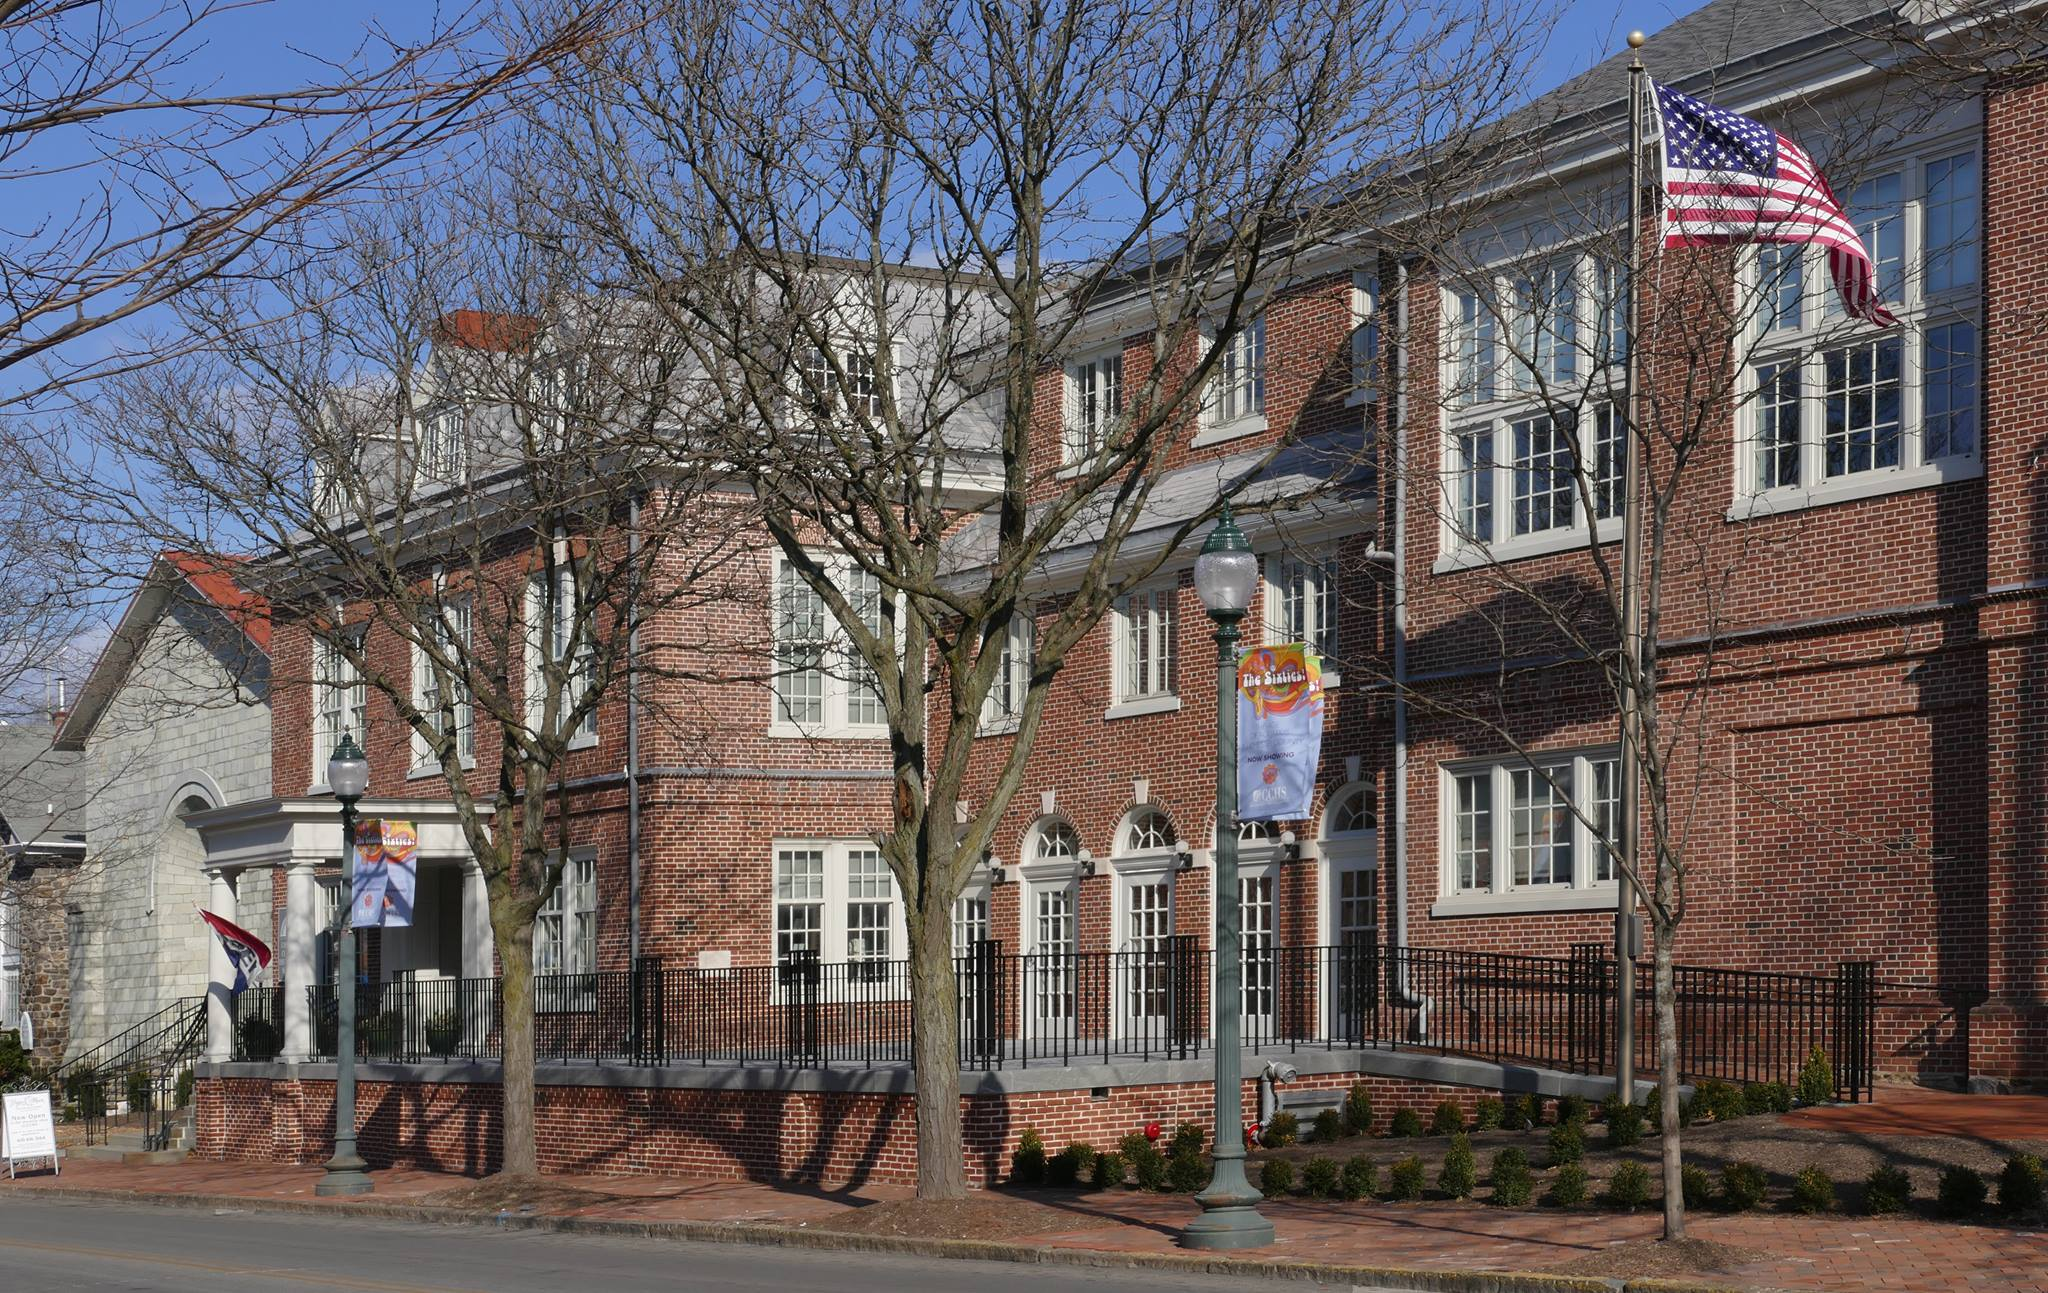 Chester County Historical Society to Host Series of Genealogical Lectures in May